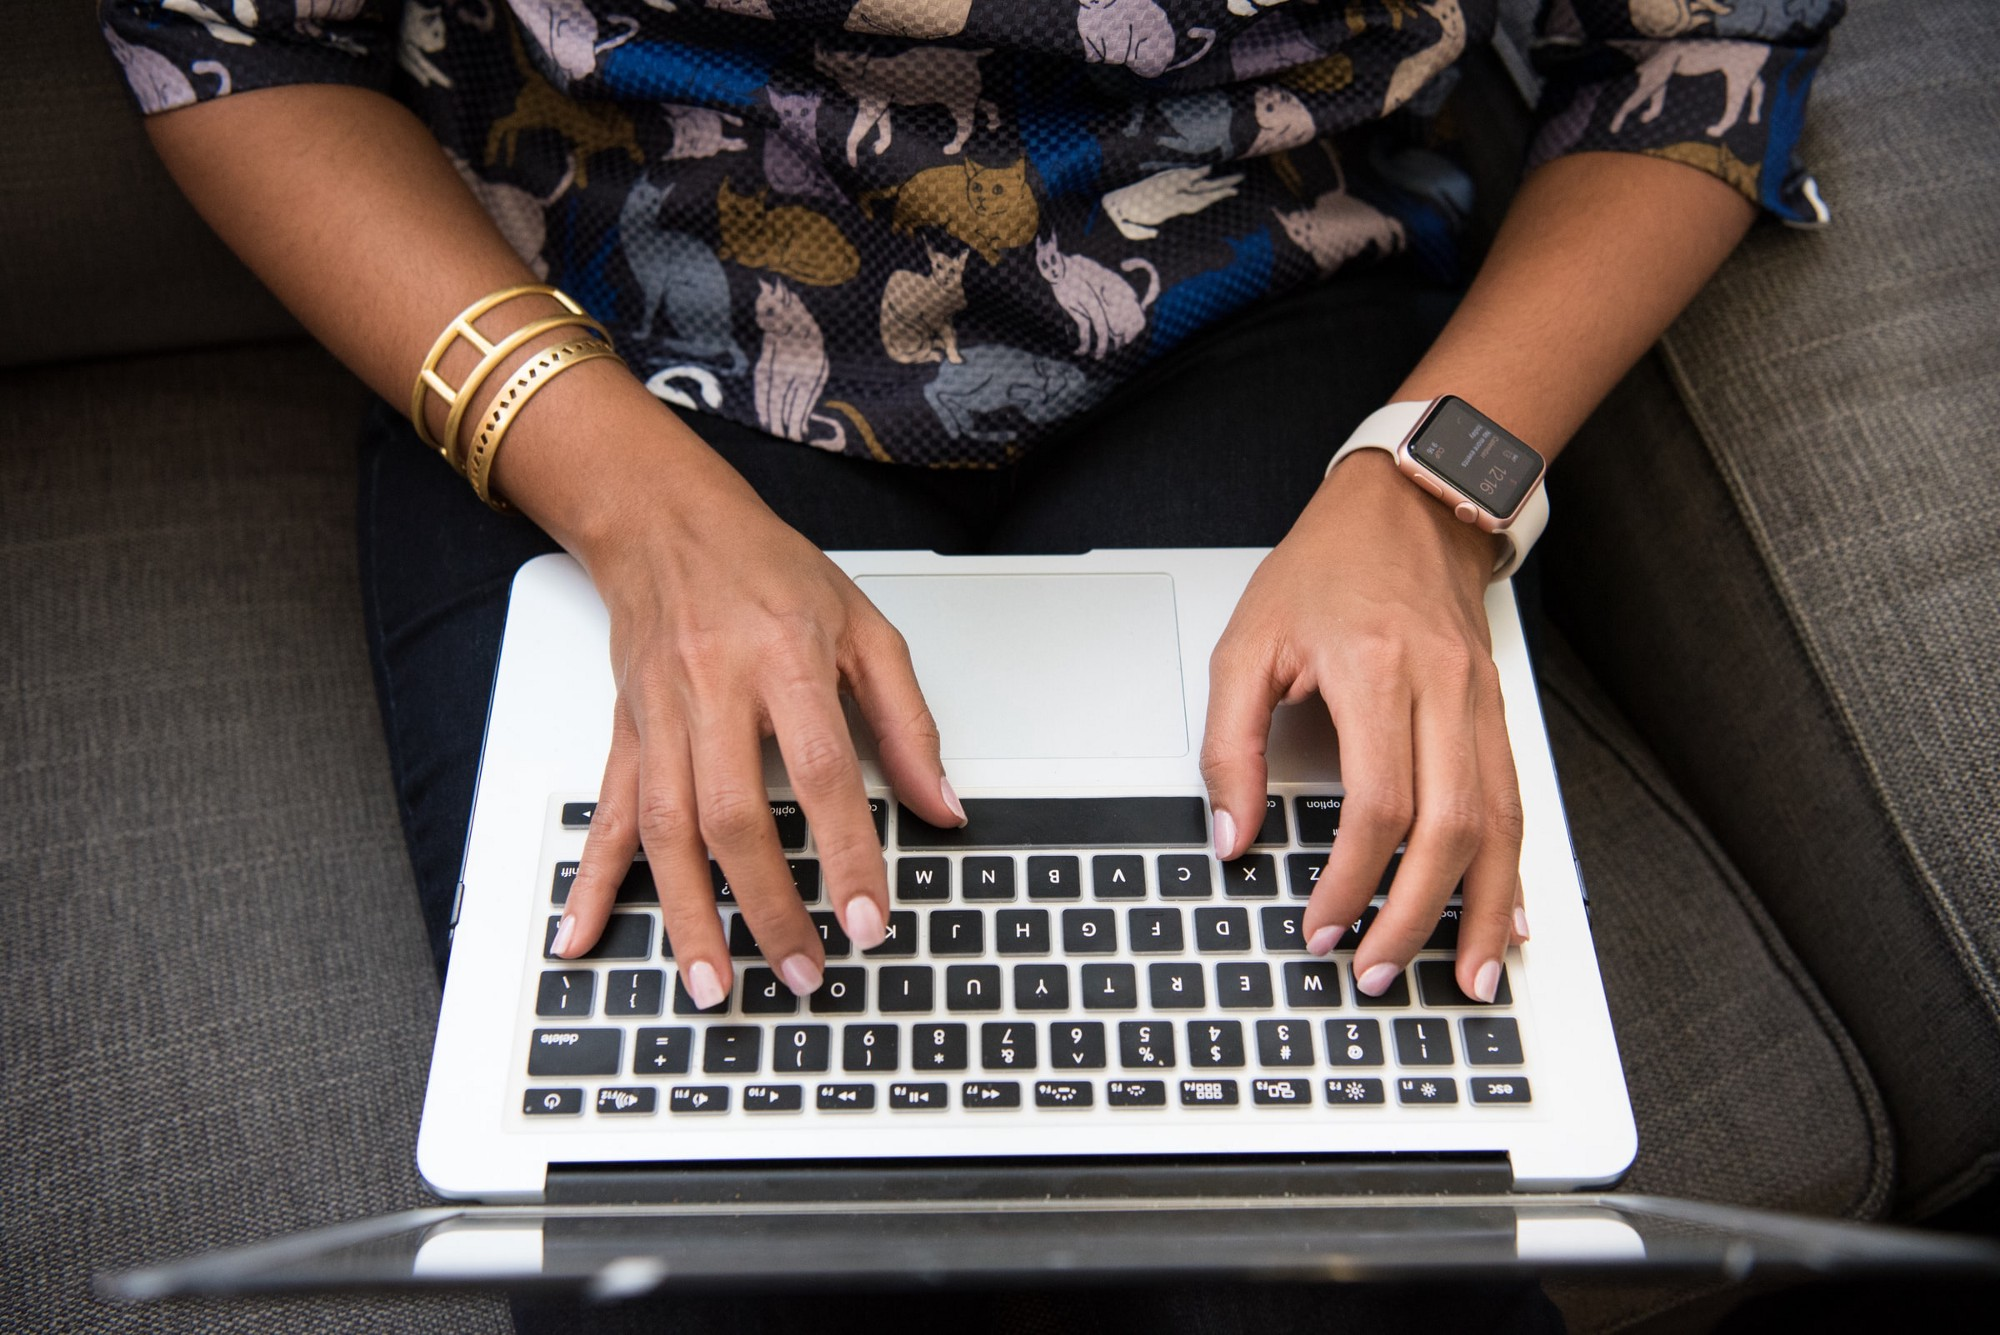 Hands typing on a laptop. Photo by Christina @ wocintechchat.com on Unsplash.